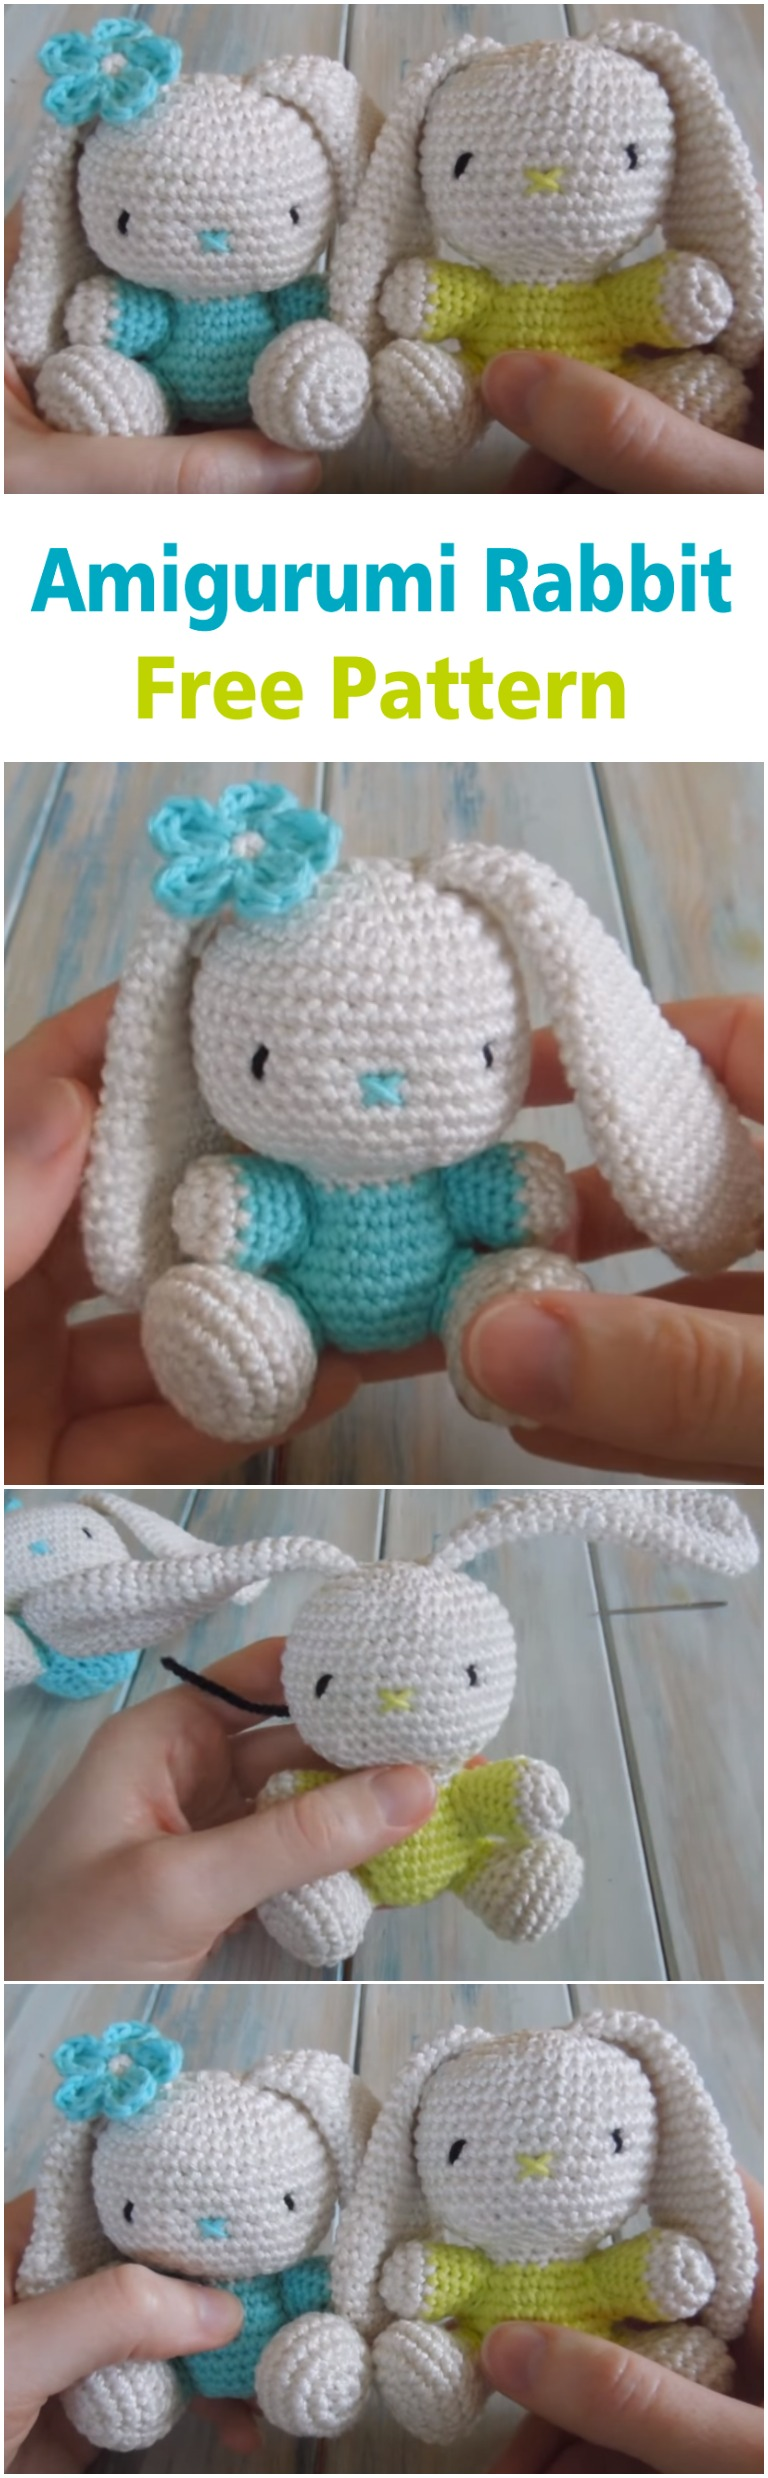 Pinky The Rabbit Amigurumi Crochet Pattern : Crochet an Amigurumi Rabbit - ilove-crochet